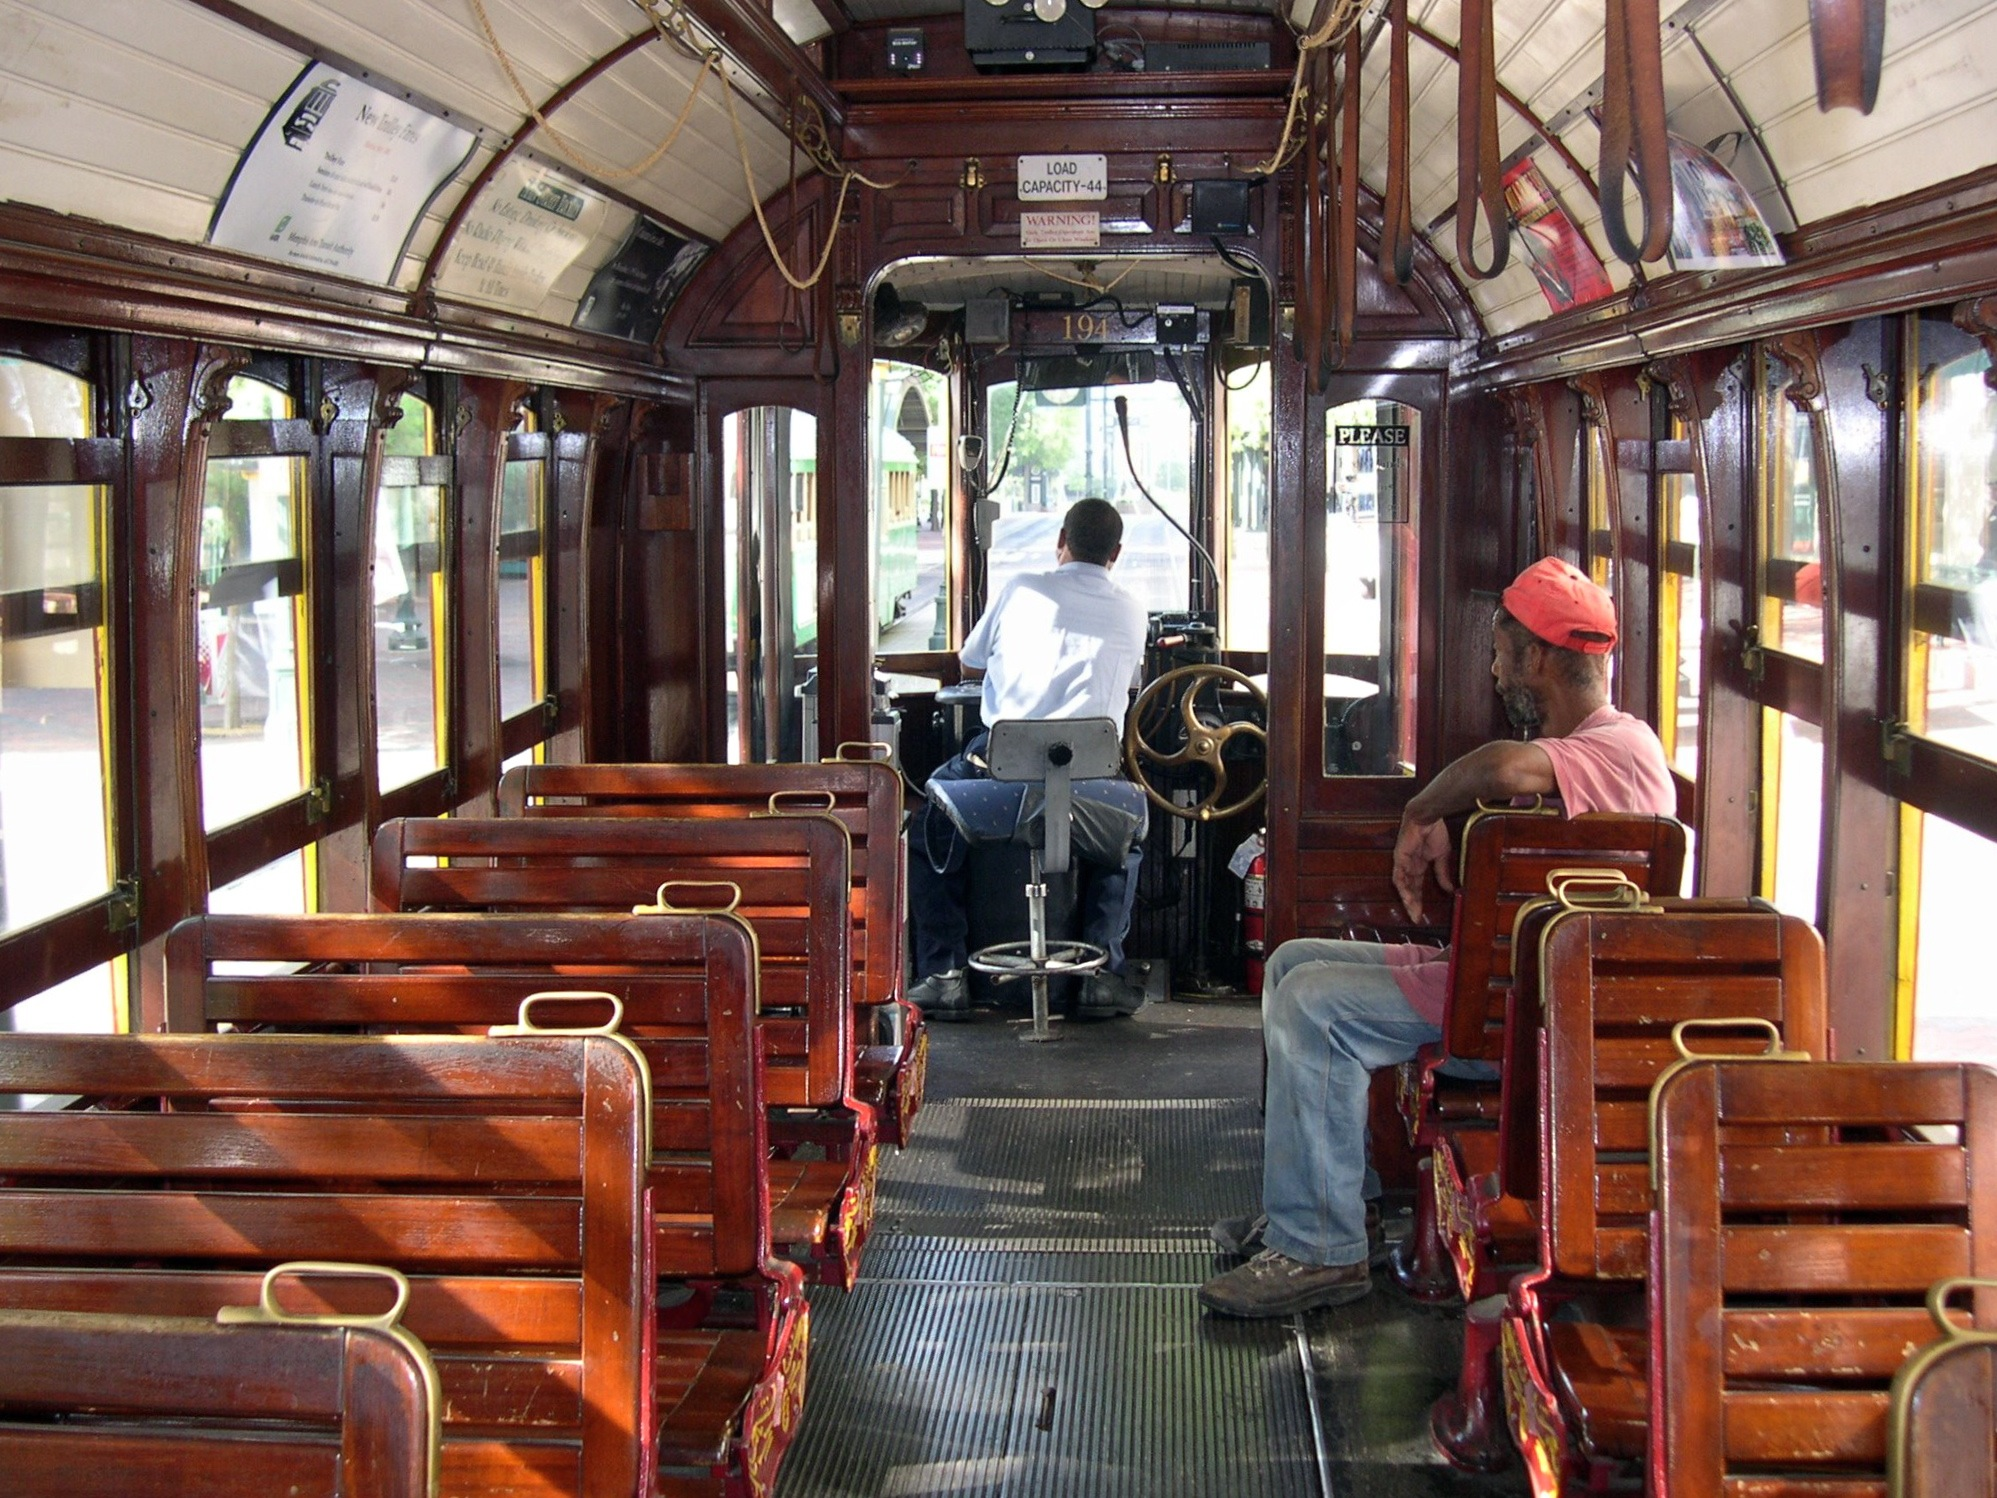 file interior memphis streetcar wikimedia commons. Black Bedroom Furniture Sets. Home Design Ideas